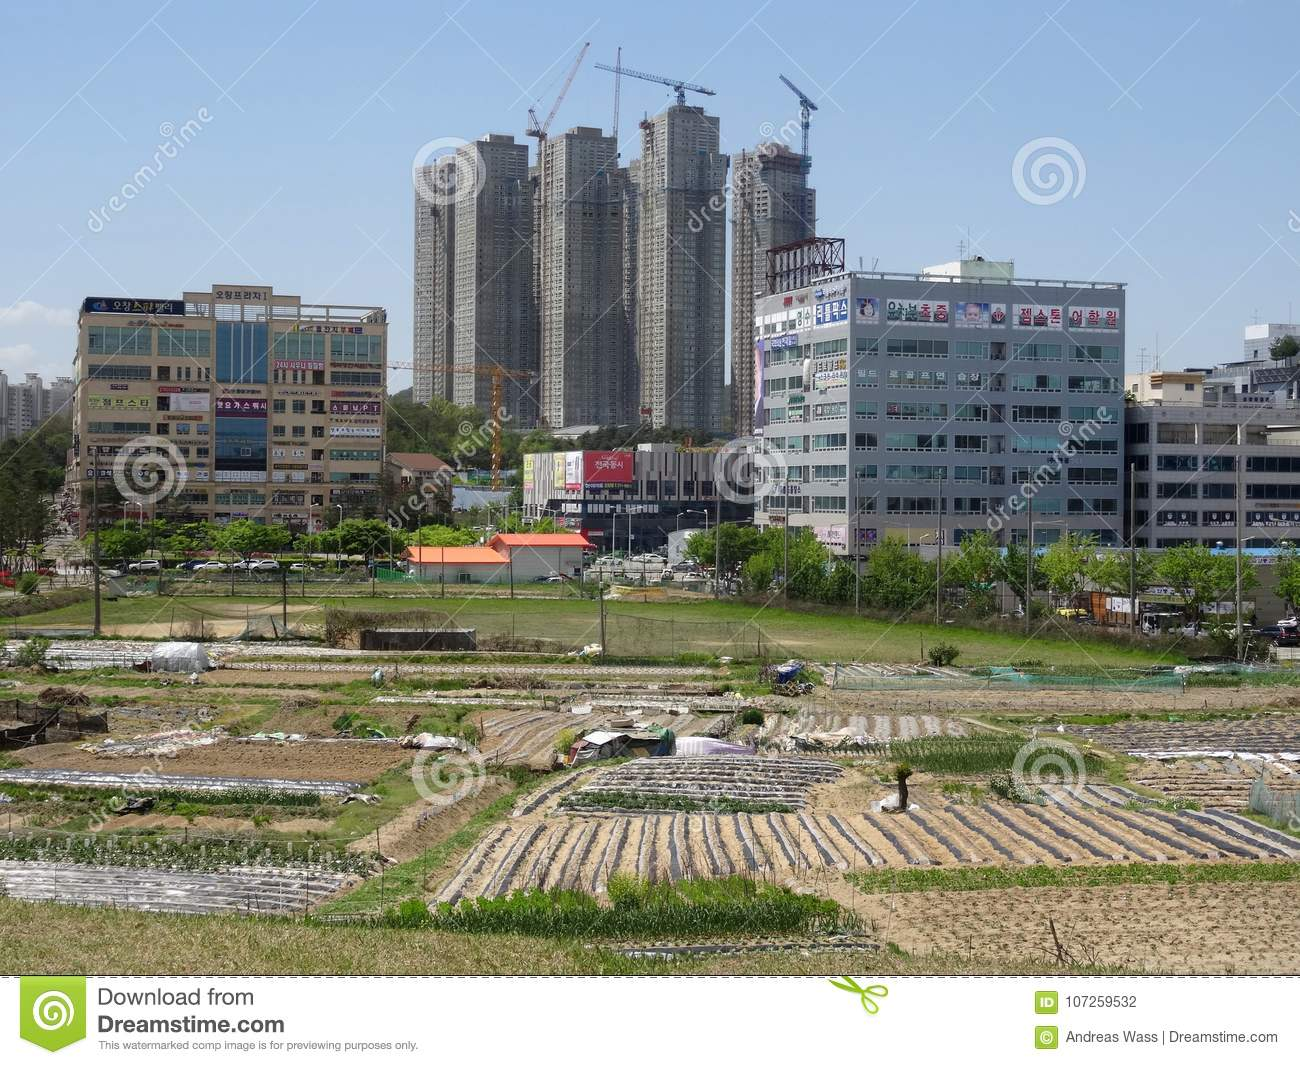 City growth: from small vegetable fields to modern skyscrapers